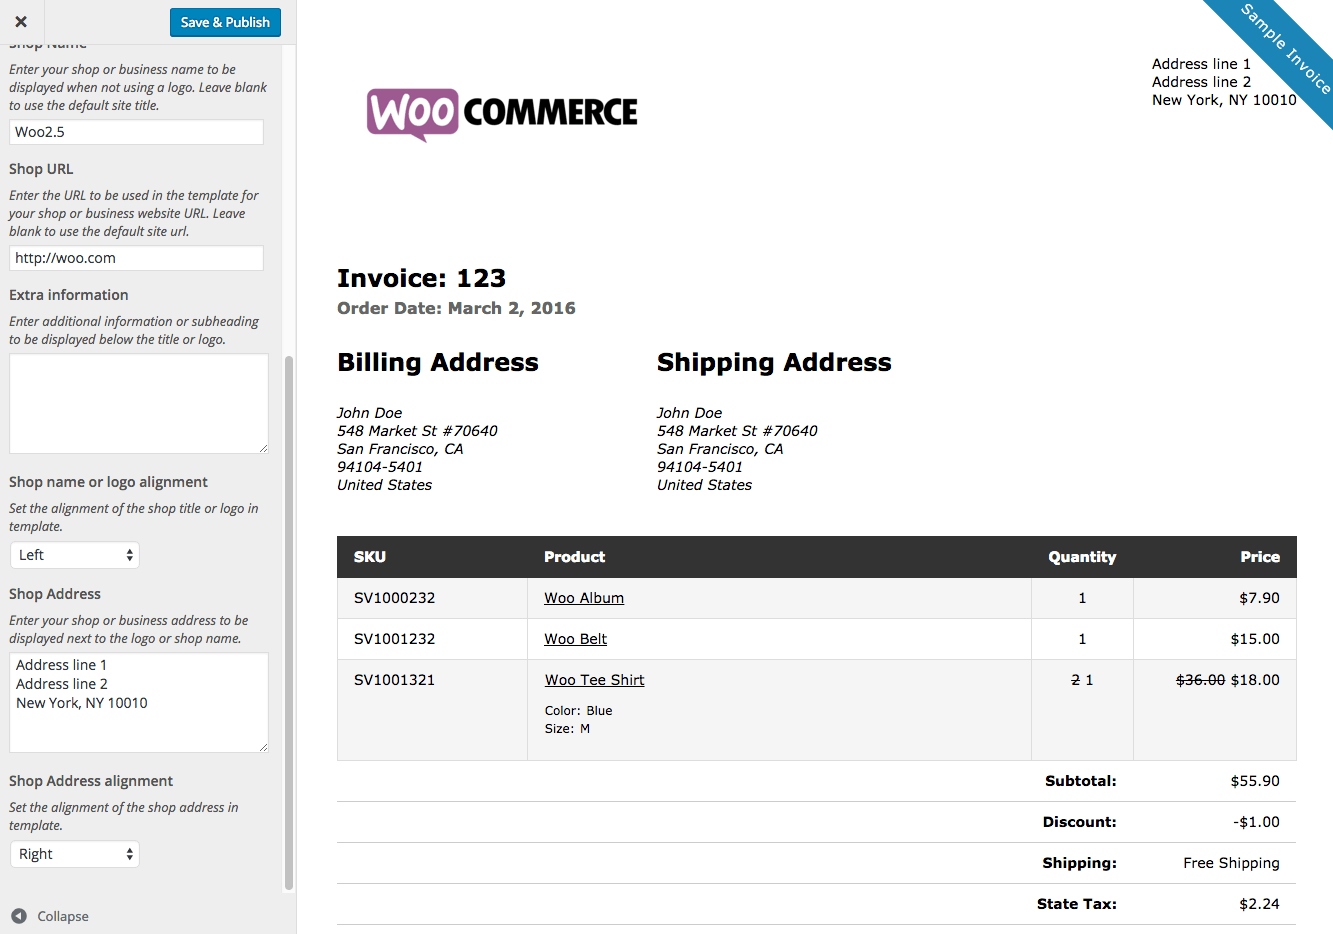 Pigbrotherus  Pretty Woocommerce Print Invoices Amp Packing Lists  Woocommerce Docs With Likable Woocommerce Print Invoices  Packing Lists Customizer With Breathtaking Copy Of Invoice Template Also Commercial Invoice For Export In Addition Blank Invoice Microsoft Word And Invoice Template Free Printable As Well As Proforma Invoice Pdf Additionally Invoice Draft From Docswoocommercecom With Pigbrotherus  Likable Woocommerce Print Invoices Amp Packing Lists  Woocommerce Docs With Breathtaking Woocommerce Print Invoices  Packing Lists Customizer And Pretty Copy Of Invoice Template Also Commercial Invoice For Export In Addition Blank Invoice Microsoft Word From Docswoocommercecom